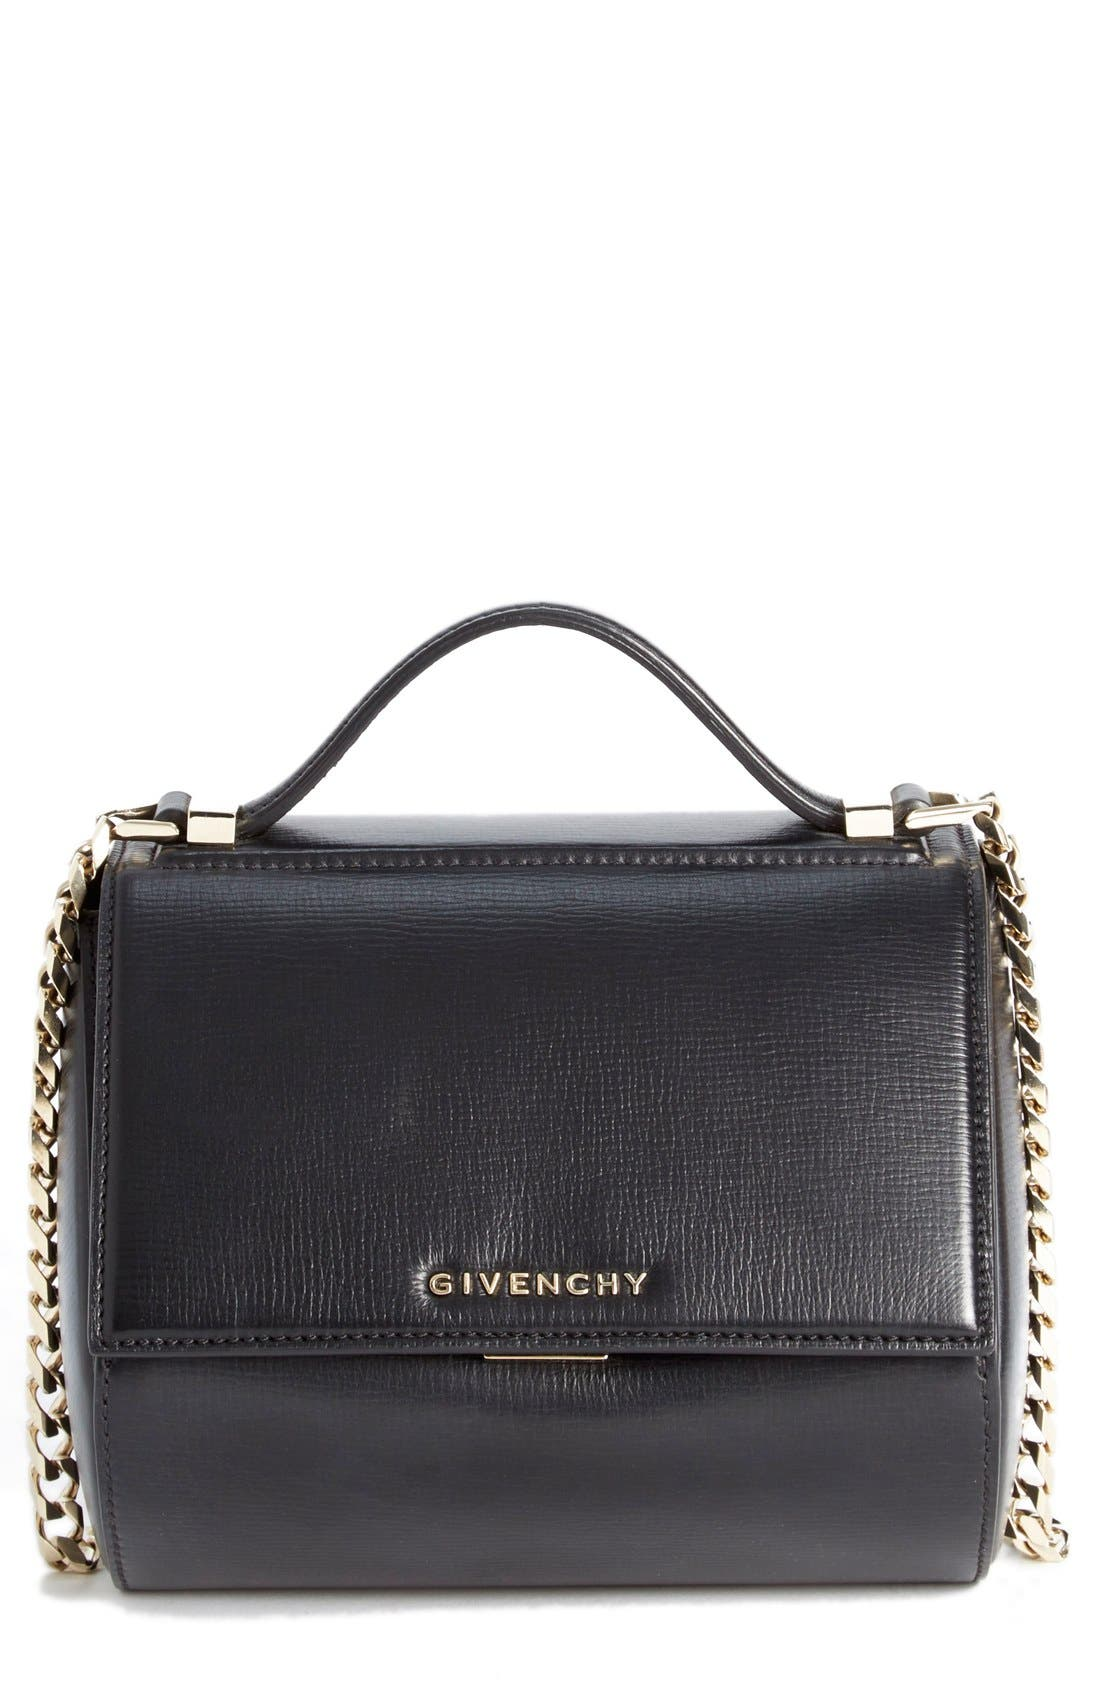 Main Image - Givenchy 'Mini Pandora Box - Palma' Leather Shoulder Bag